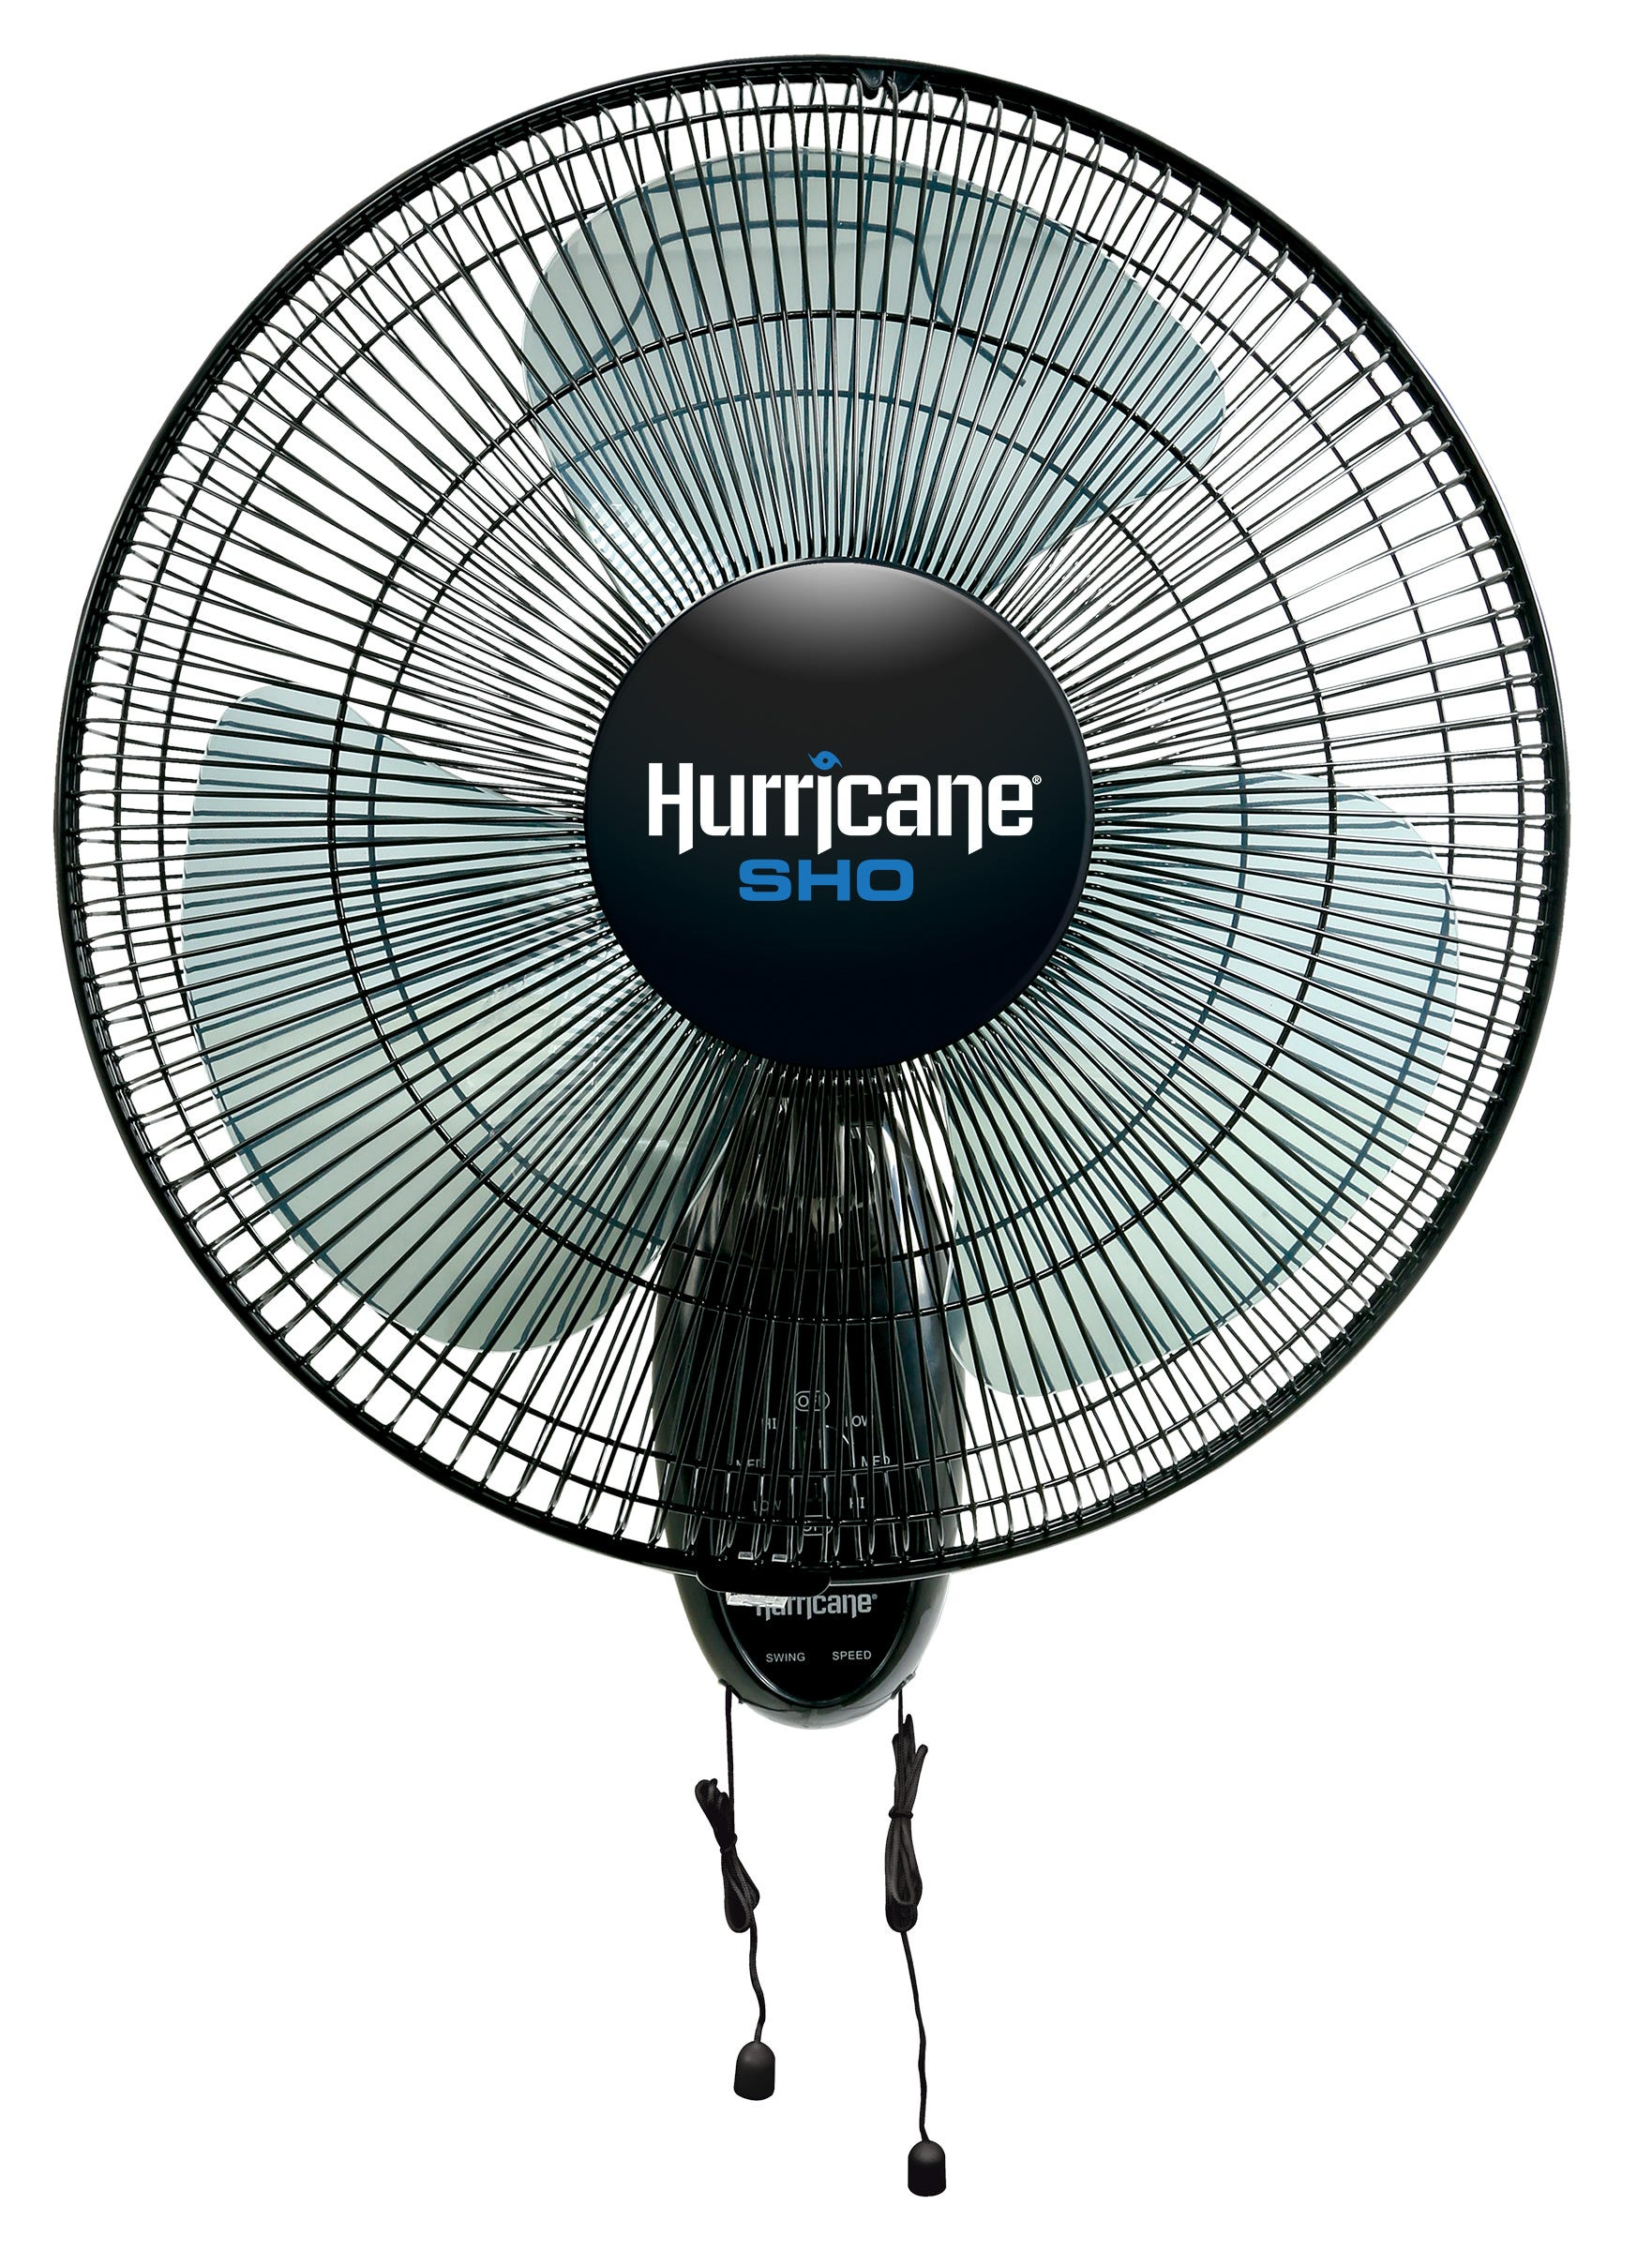 Hurricane SHO Oscillating Wall Mount Fan 16 in